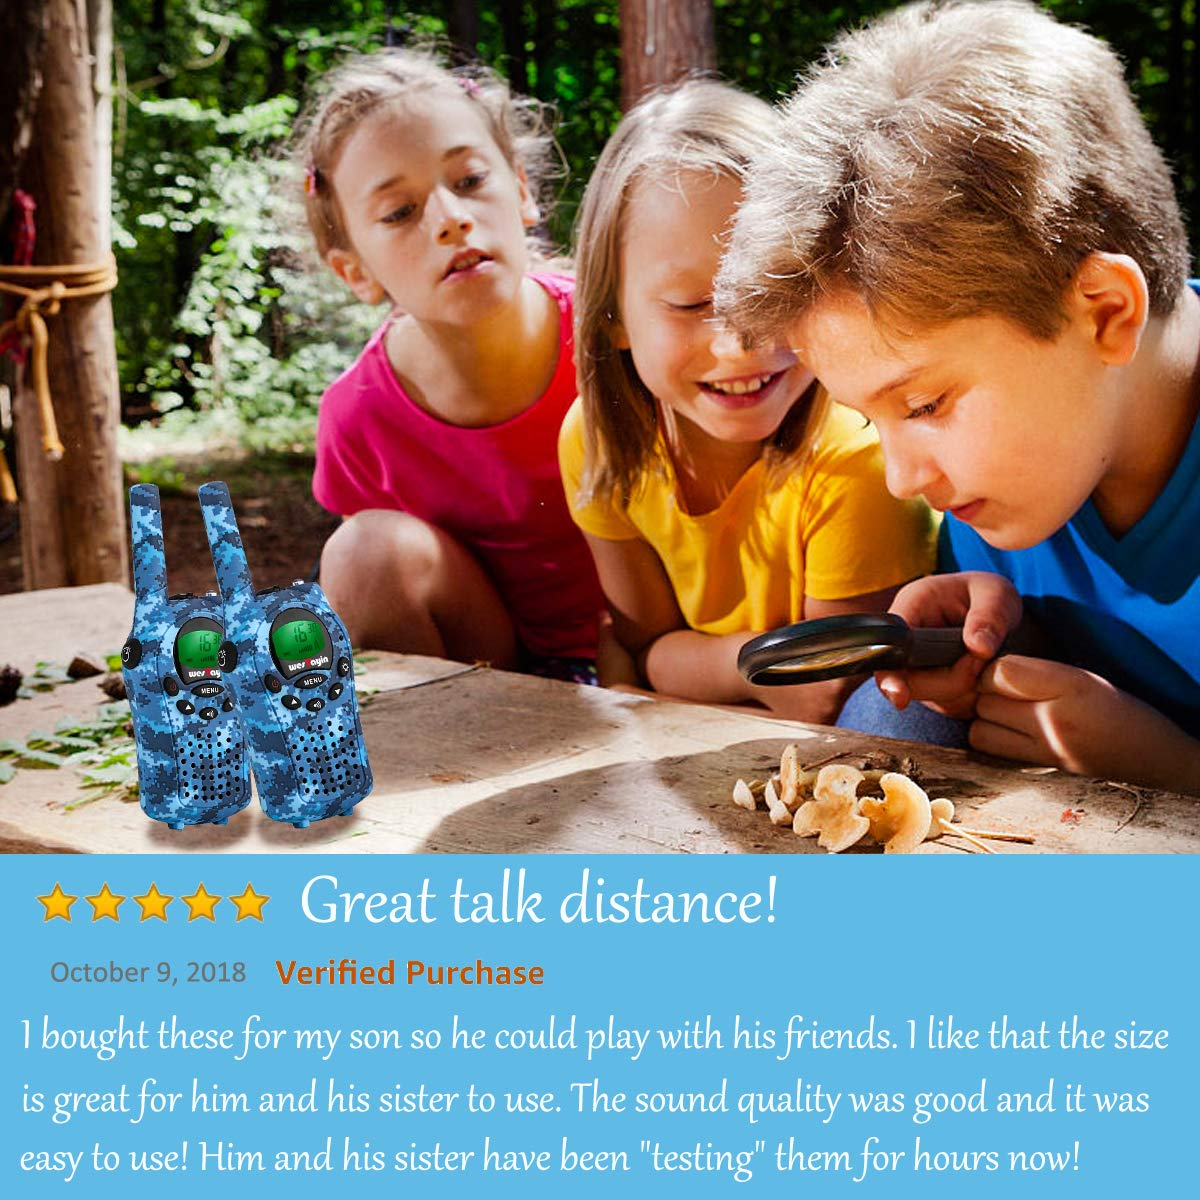 Walkie Talkies for kids, Kids Walkie Talkies for Girls and Boys , Vox Hands Free 4 Miles Long Range Walkie Talkie Set with Cystal Sound and LED Flashlight, Best Kids Toys Gifts for Christmas Birthday by WES TAYIN (Image #2)